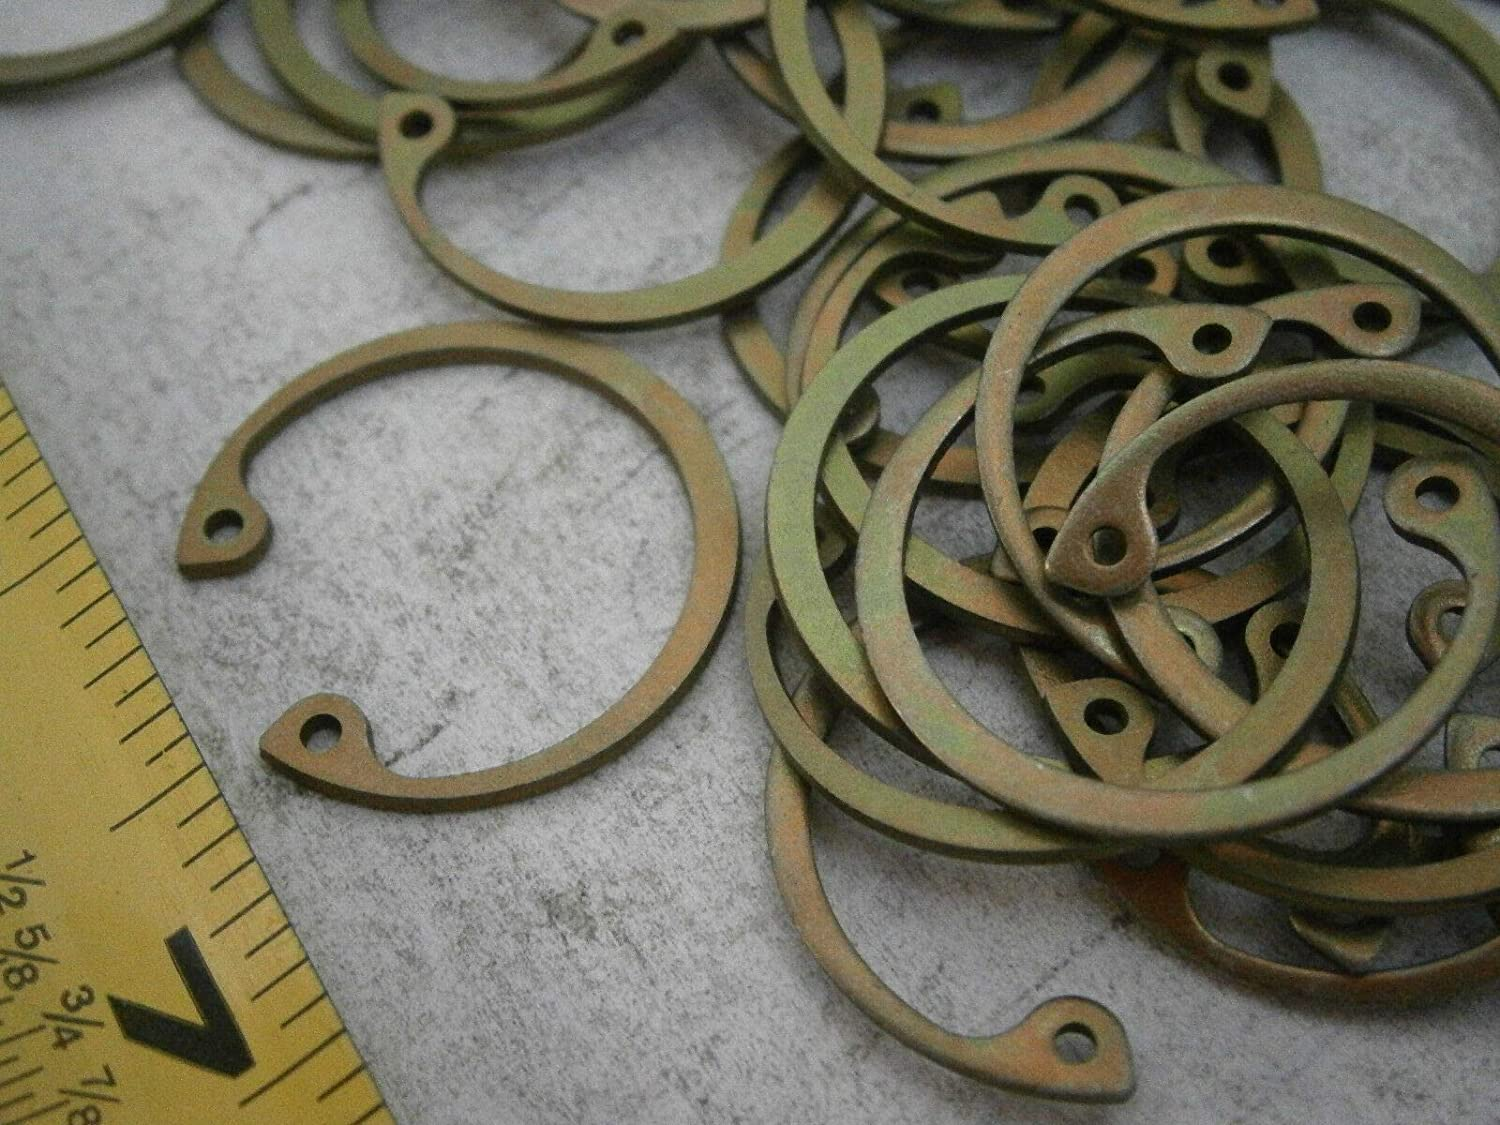 Quality Assurance from JumpingBolt 20#4512 N5001-87-ZD Retaining Rings Bowed for .875 Housing Steel LOT of